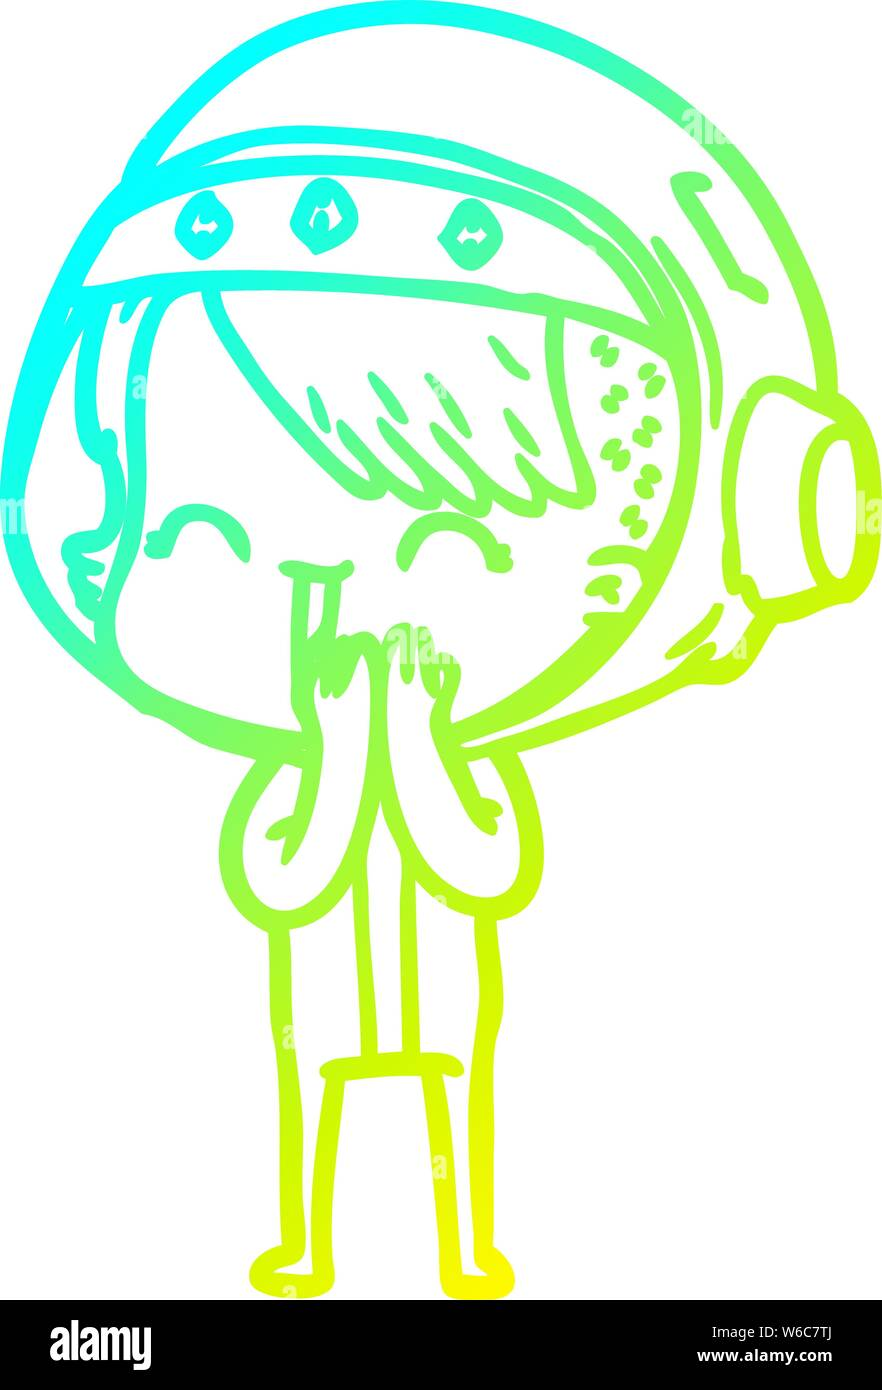 Cold Gradient Line Drawing Of A Giggling Cartoon Space Girl Stock